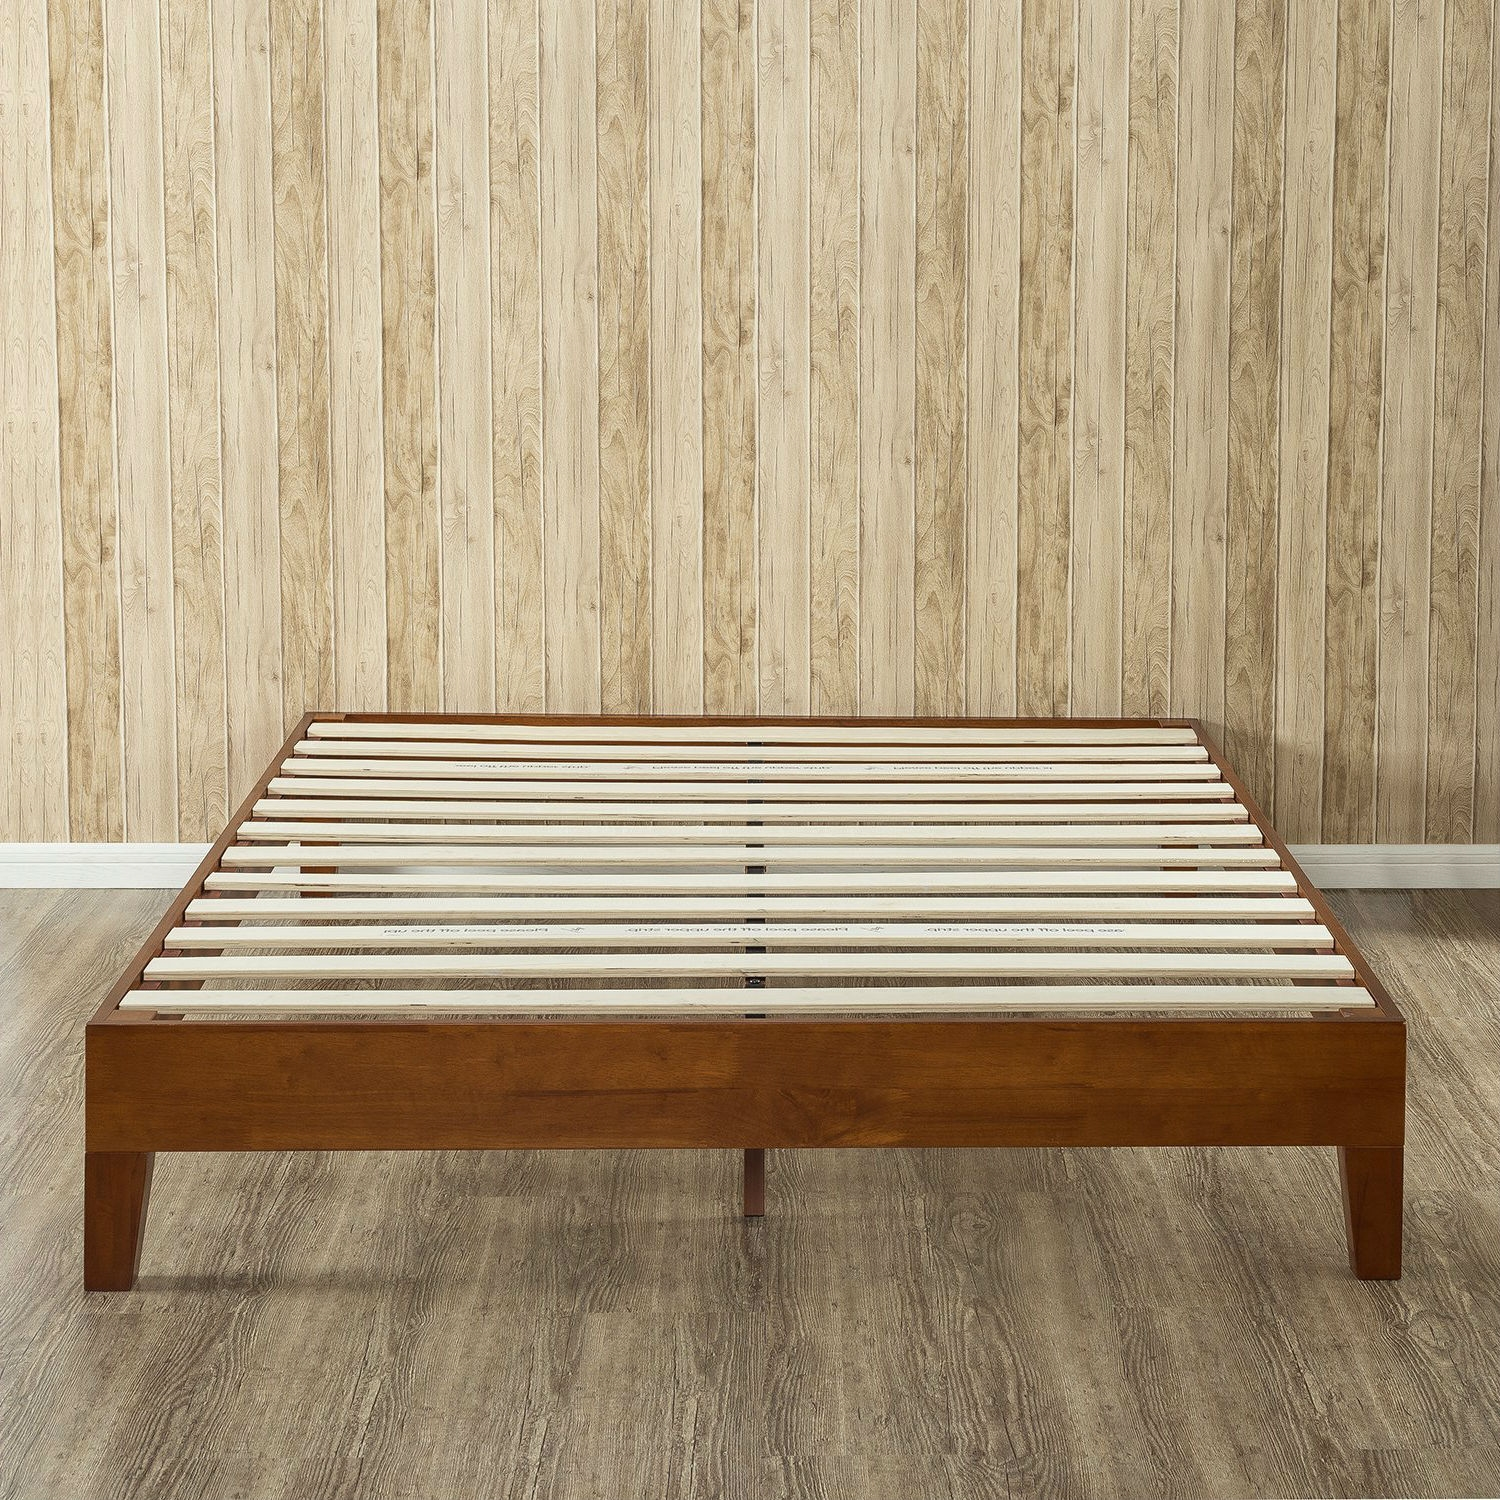 queen size solid wood low profile platform bed frame in cherry finish - Wood Platform Bed Frame